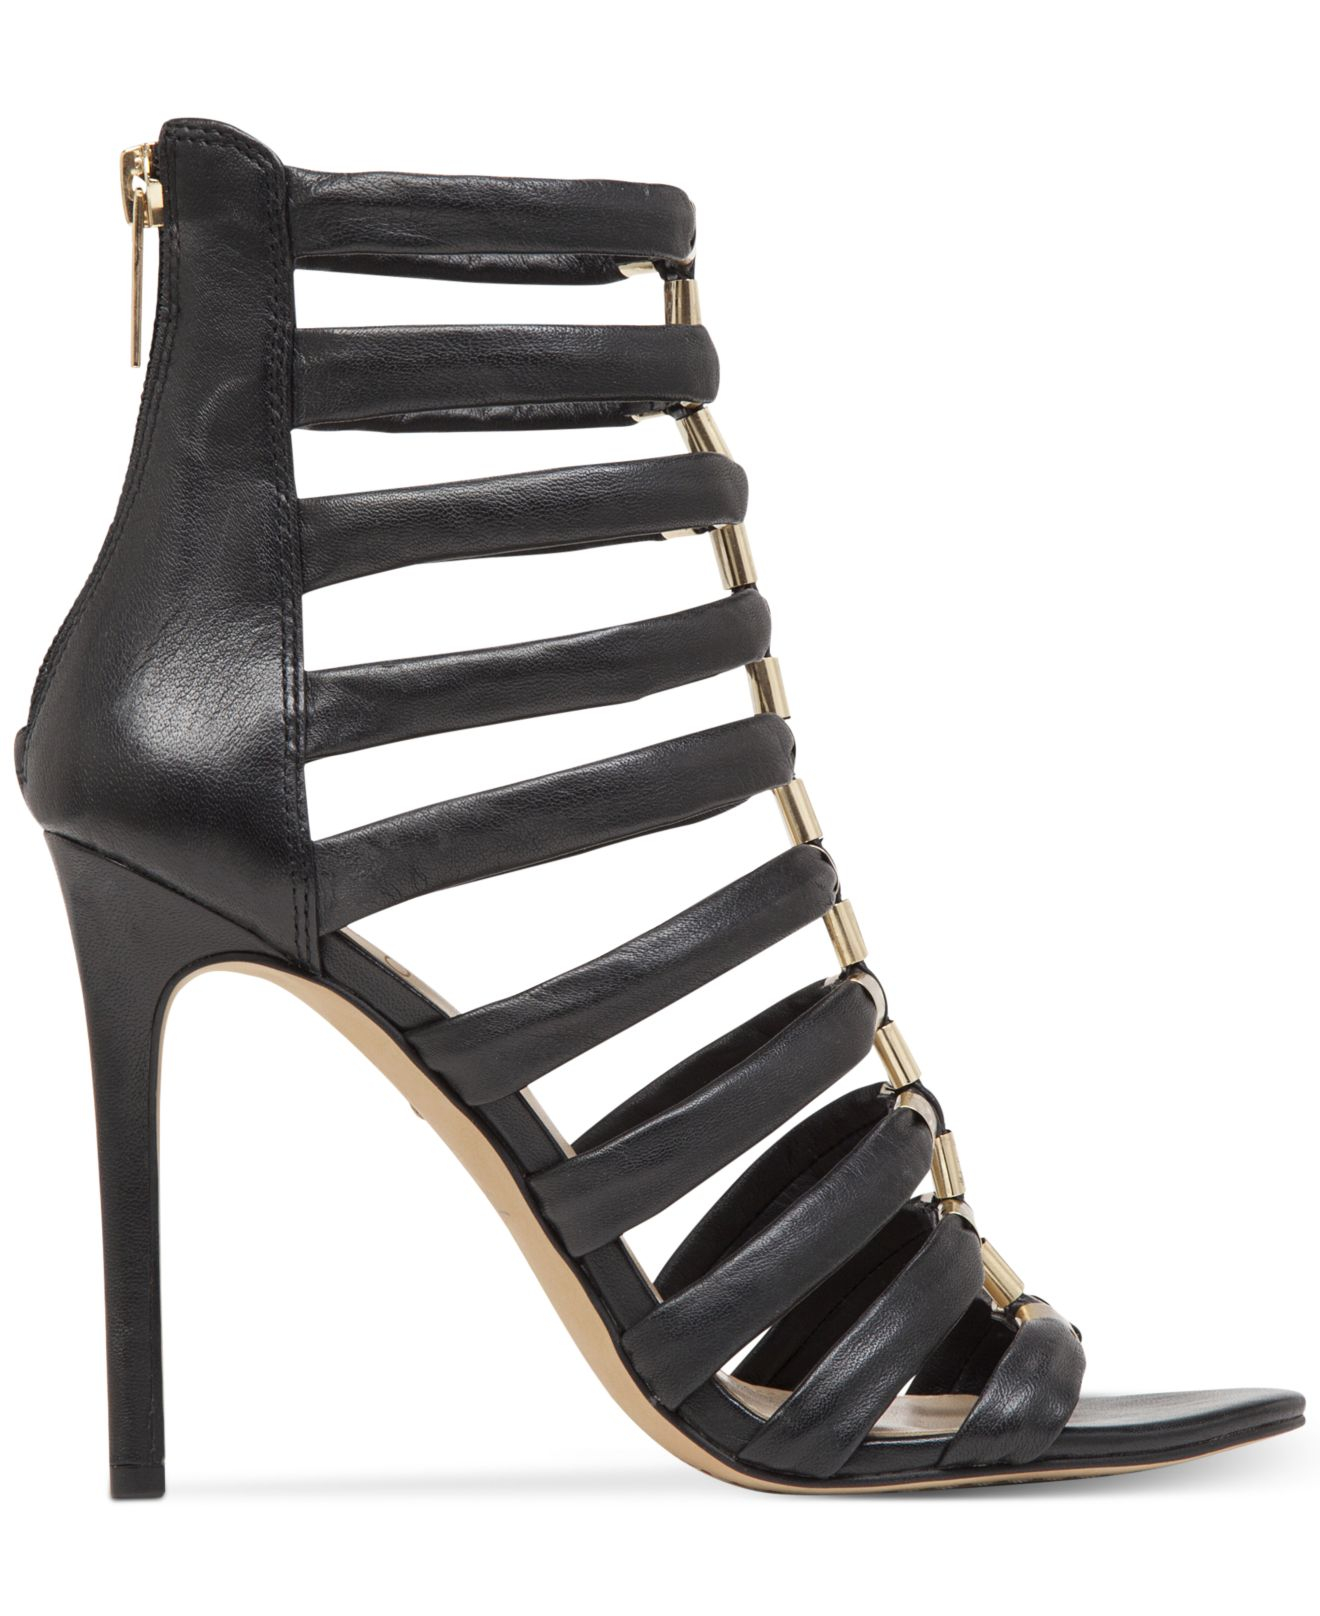 6254c4315c6 Lyst - Vince Camuto Troy Caged Dress Sandals in Black